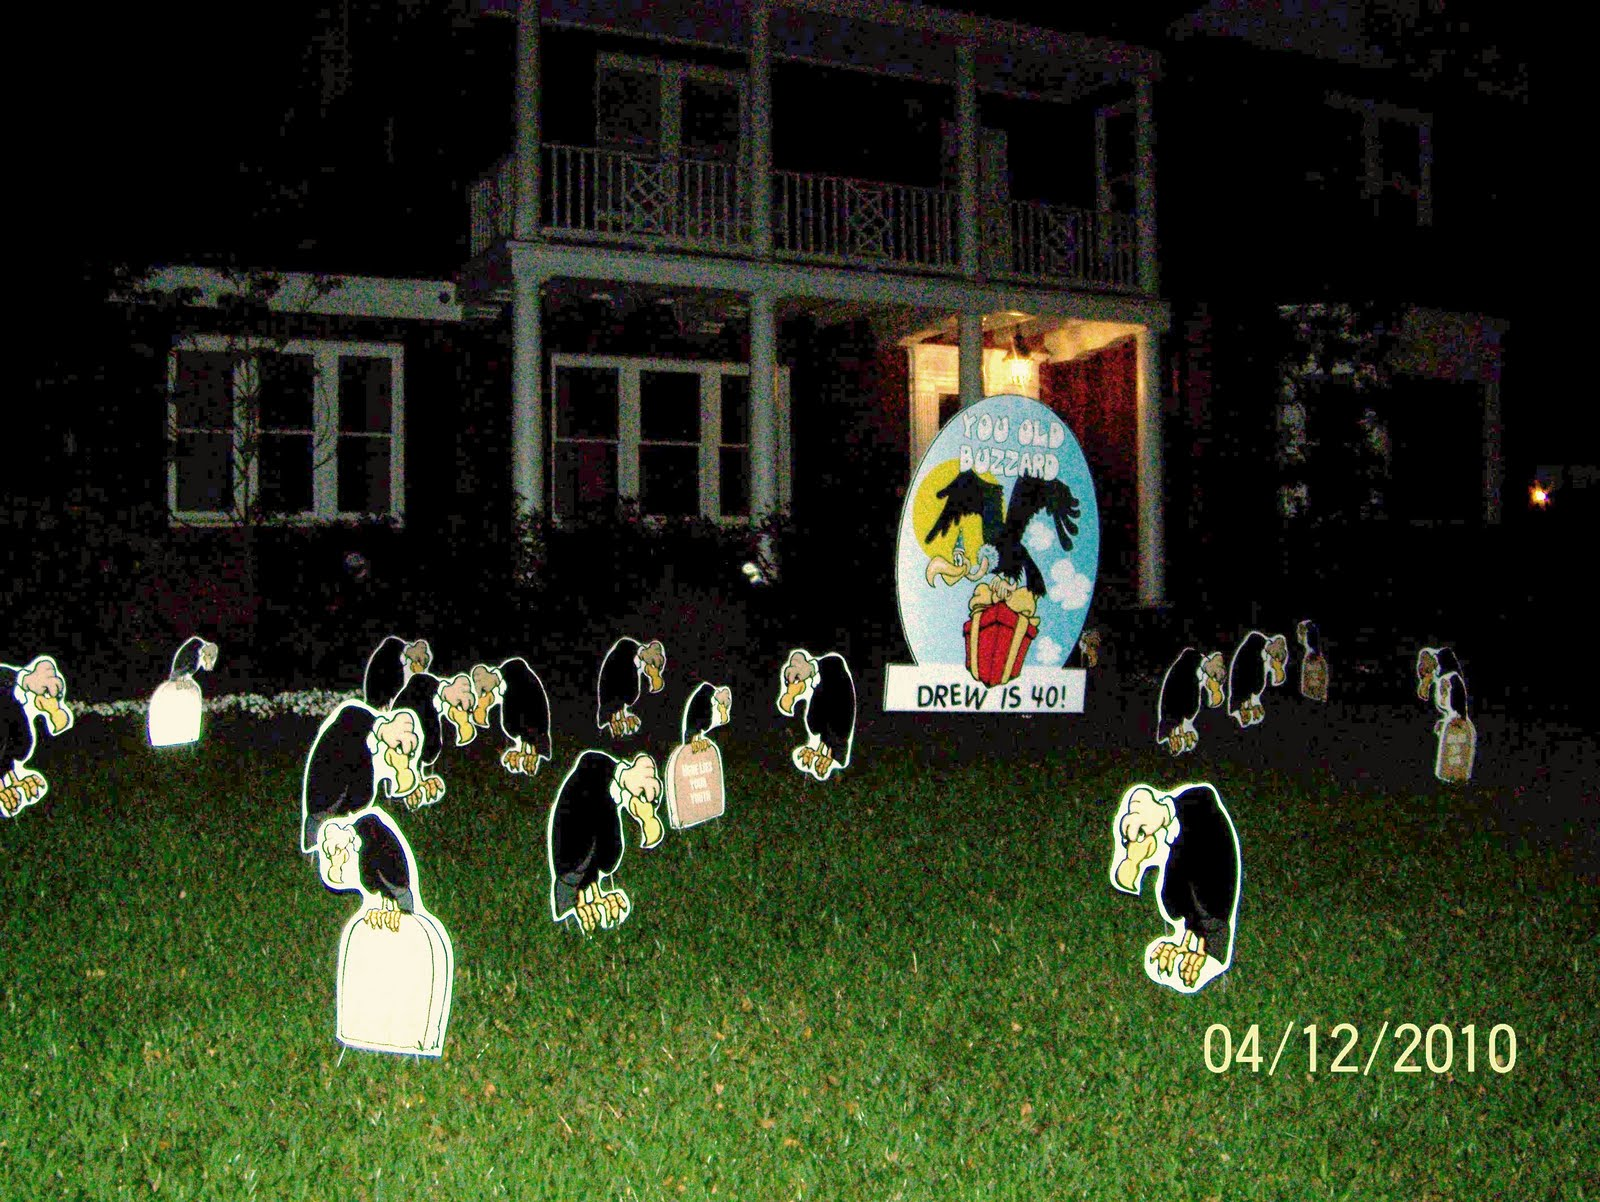 Birthday Lawn Decoration Ideas Image Inspiration of Cake and